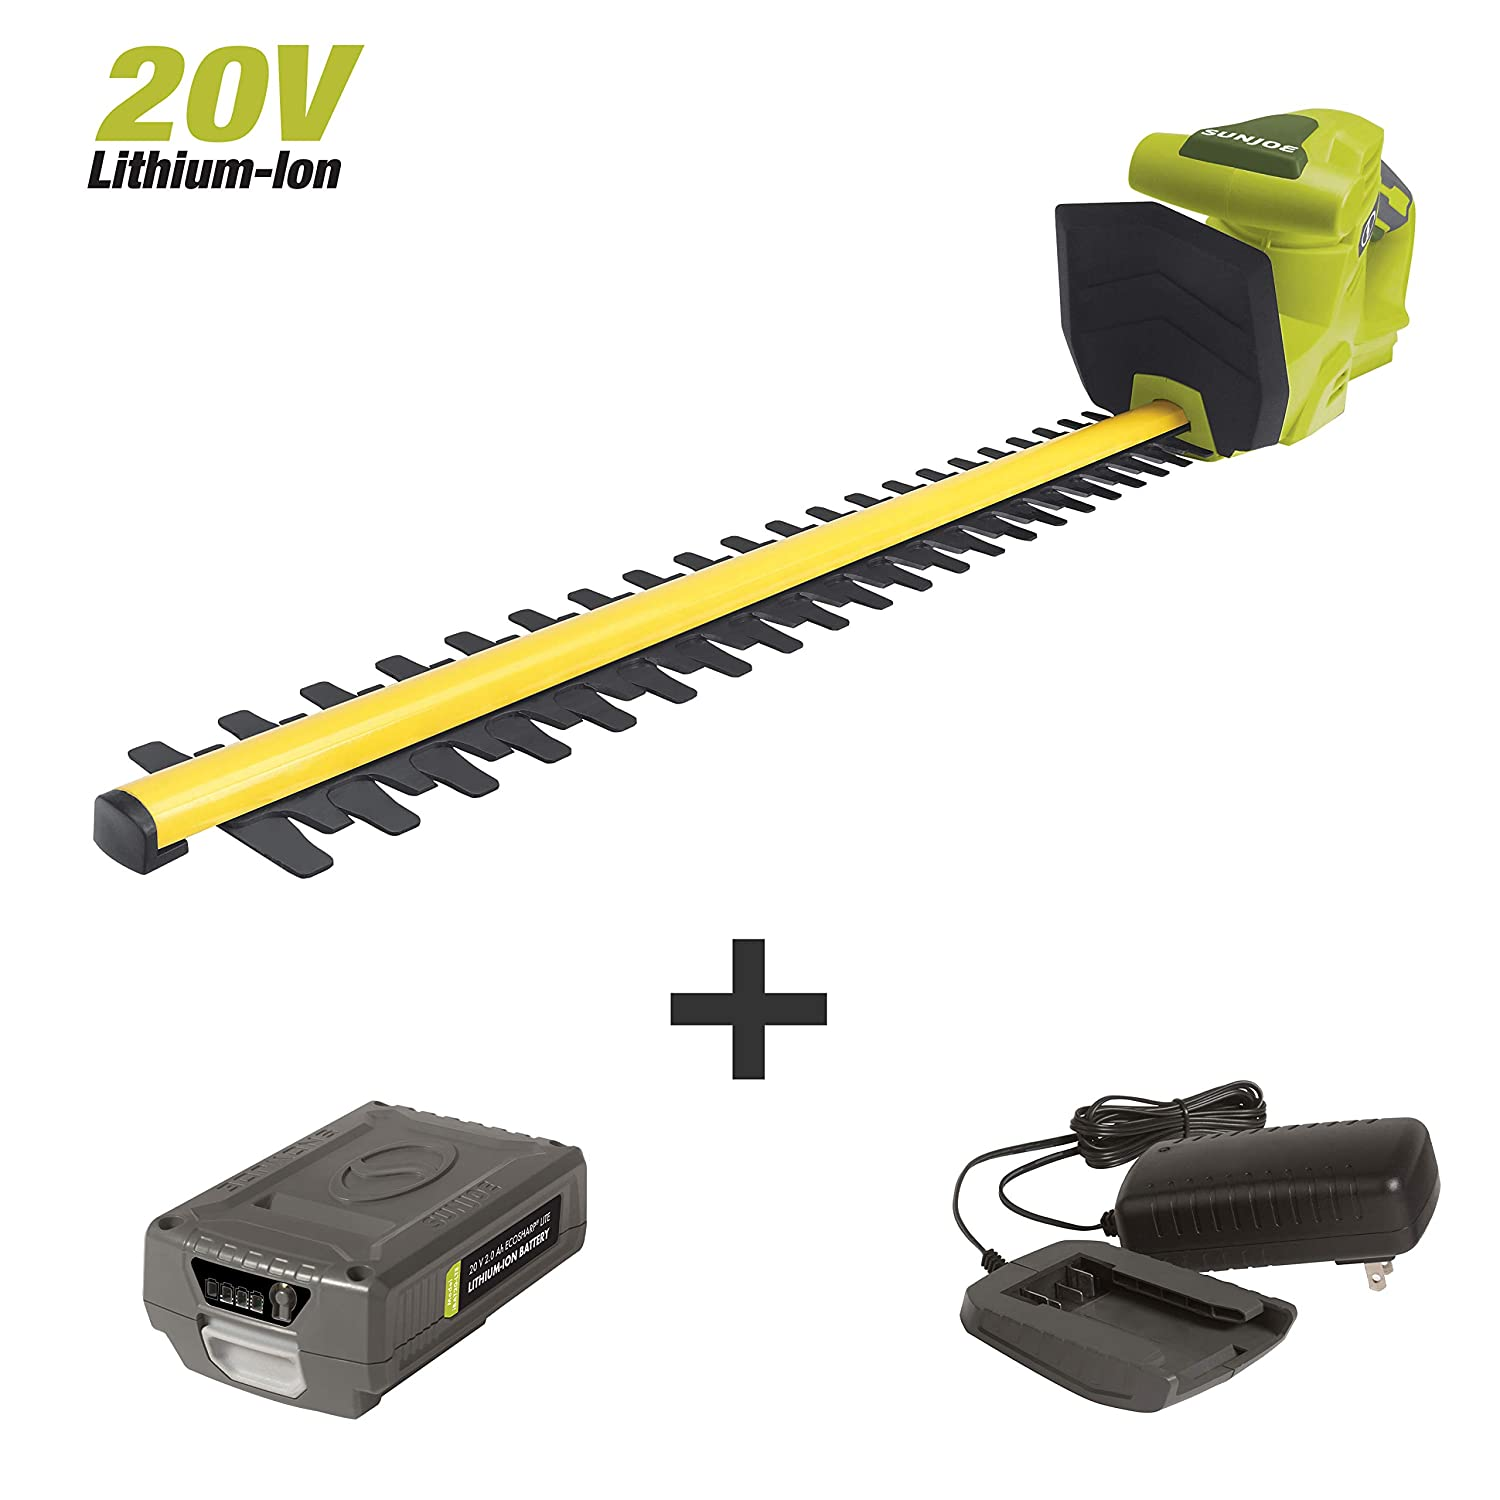 Sun Joe 20VIONLTE-HT20 Cordless Hedge Trimmer, Kit w 2.0-Ah Battery Quick Charger